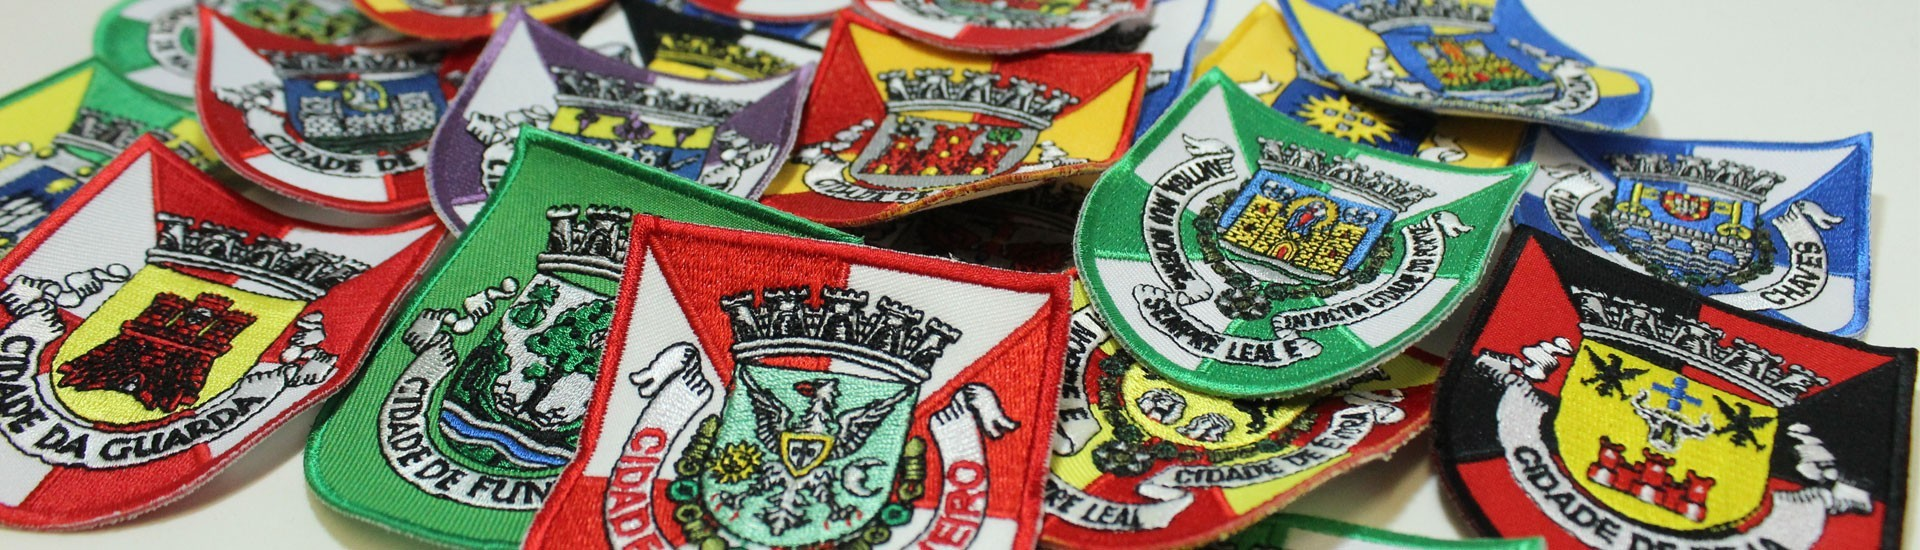 Coat of arms patches